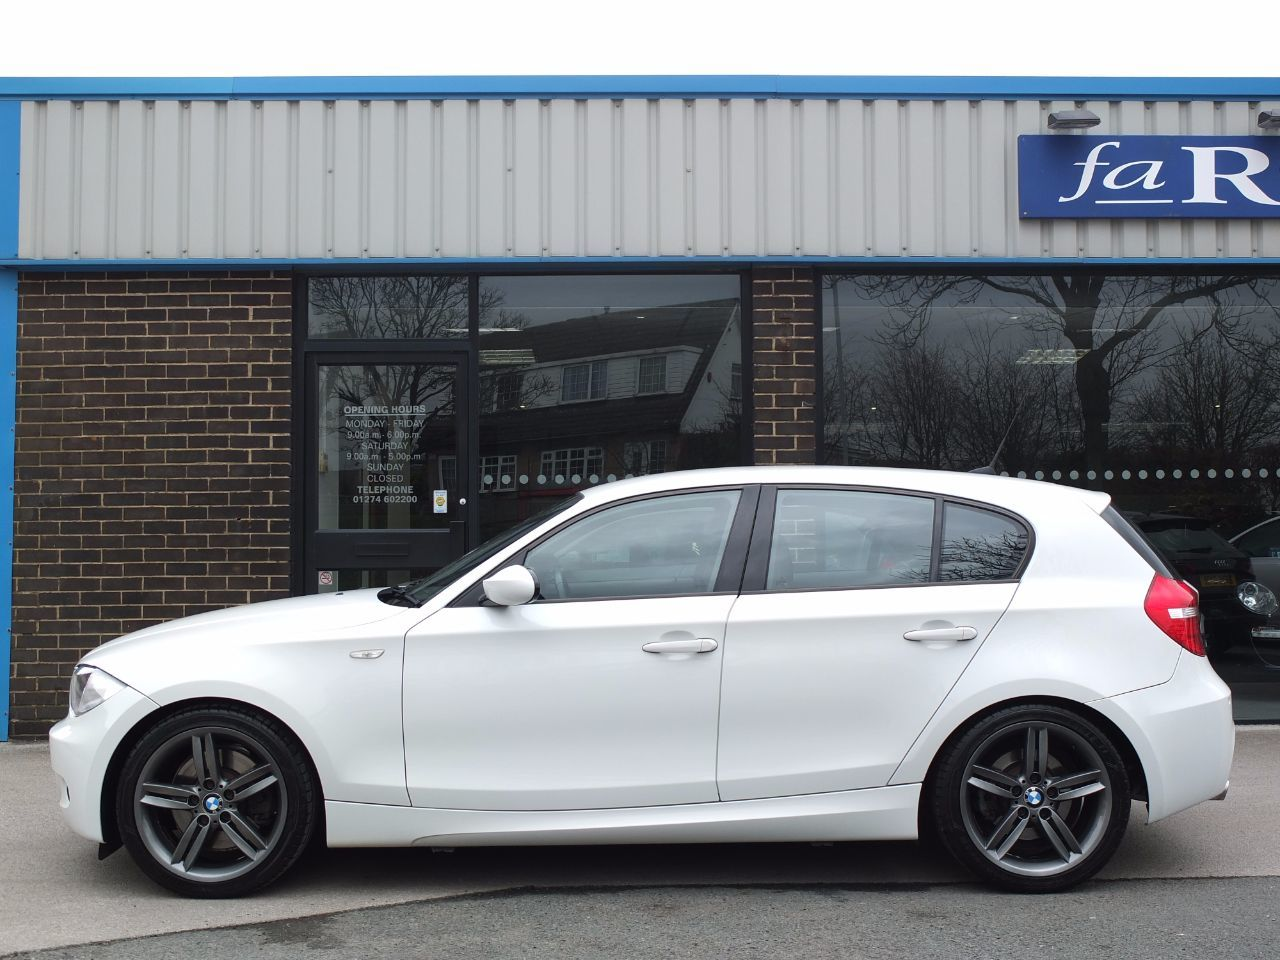 BMW 1 Series 3.0 130i M Sport 5 door Hatchback Petrol Alpine White